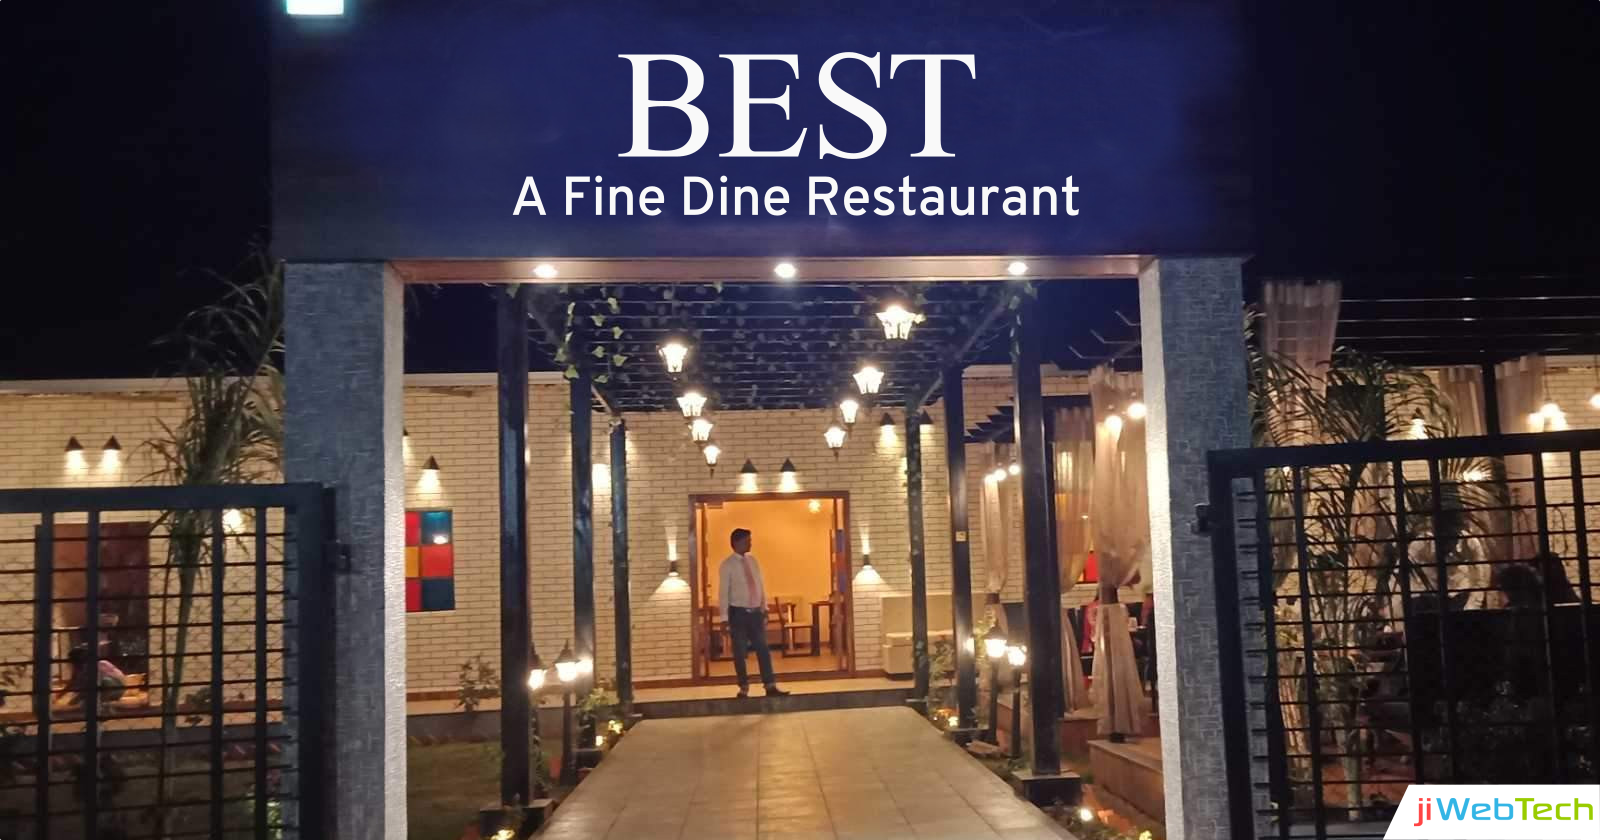 jiWebTech Offers POS Software Solution for Best Fine Dine Restaurant